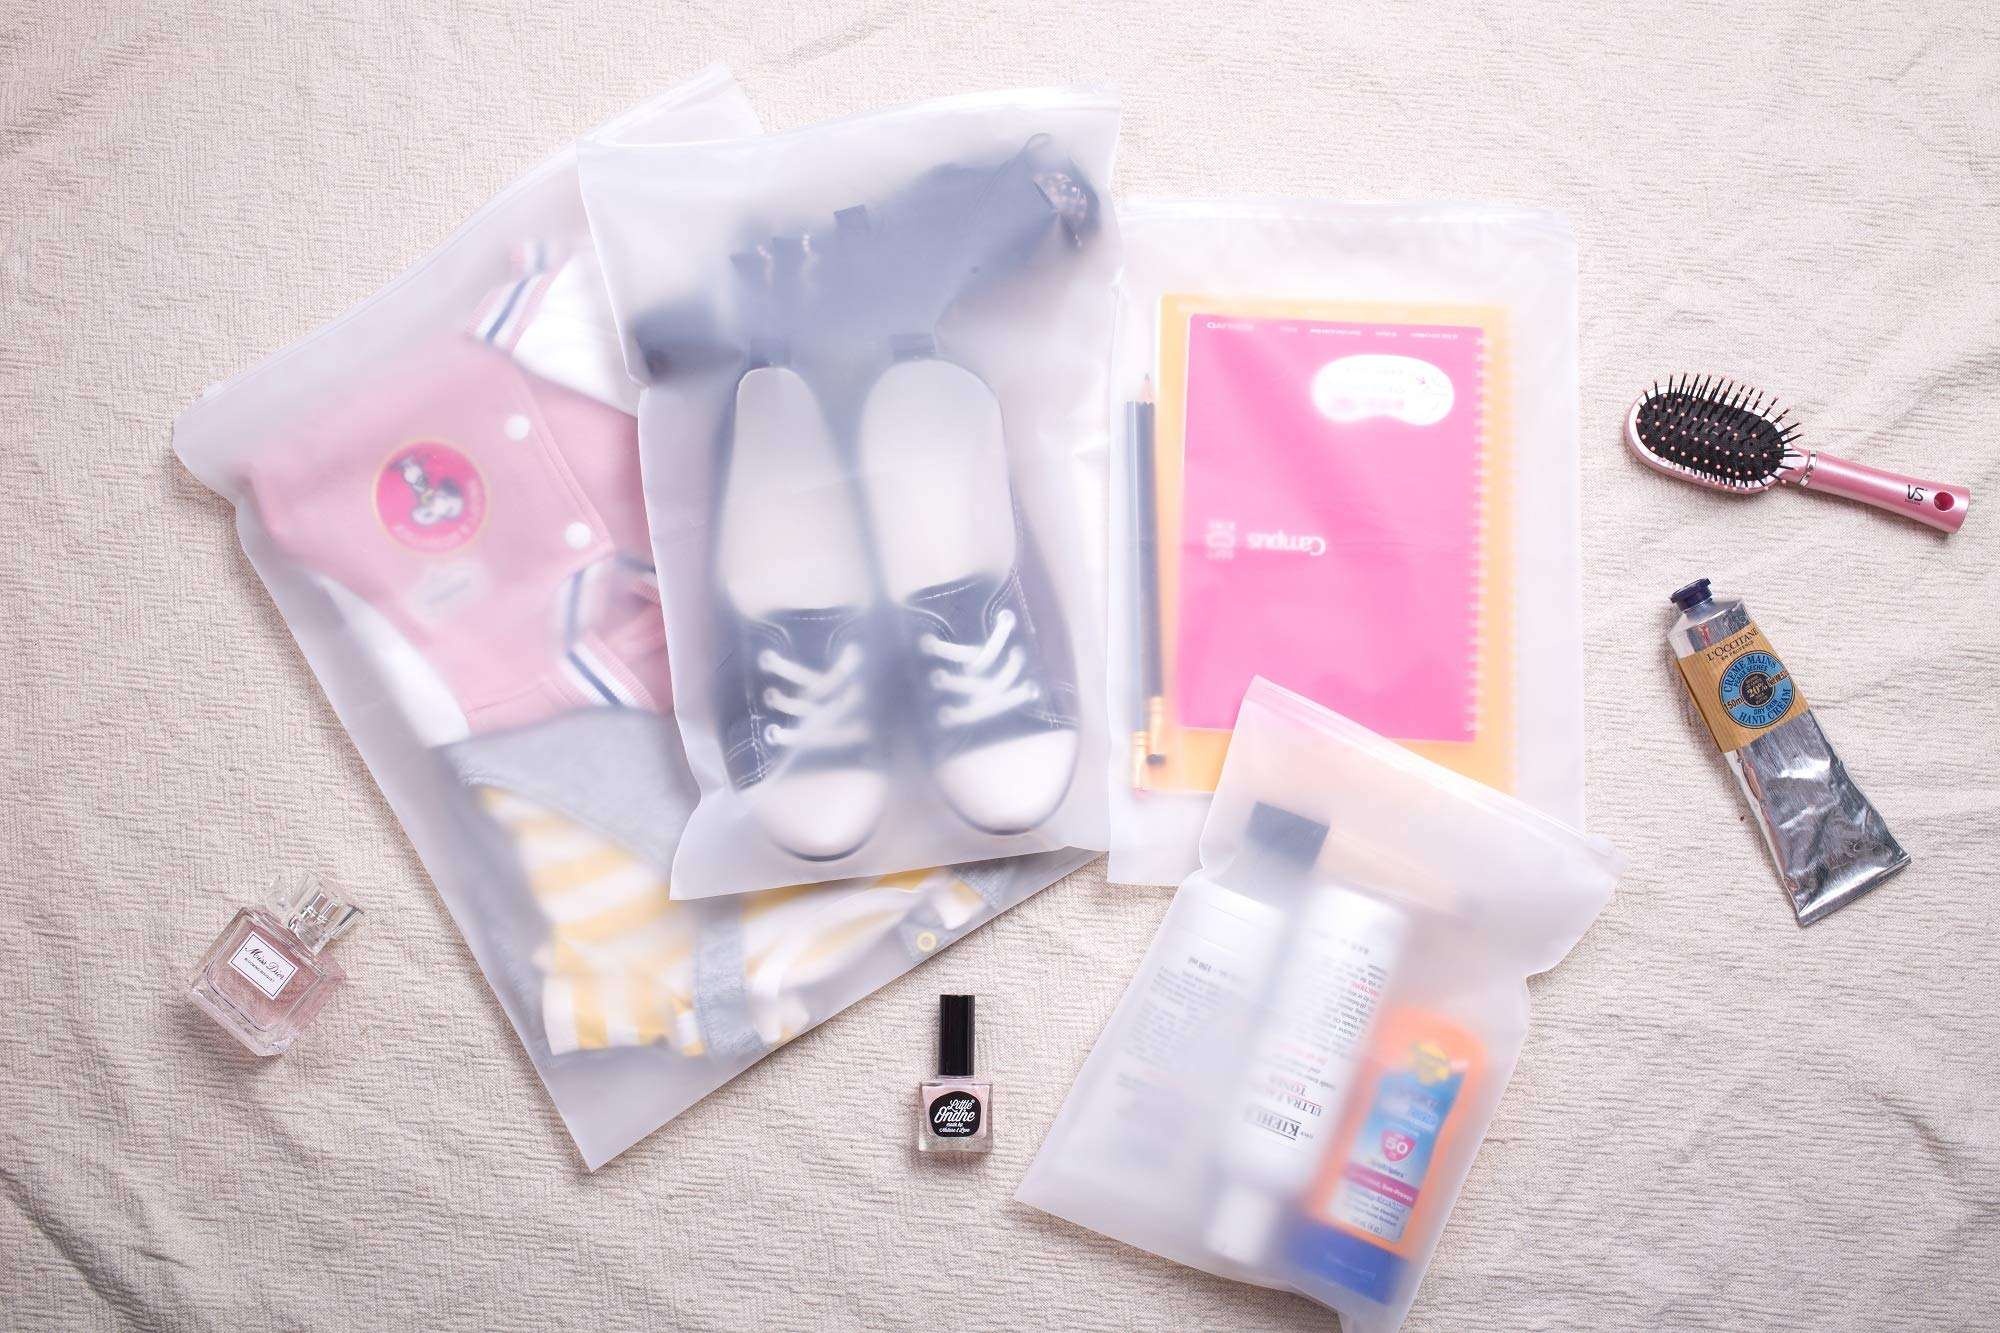 Lazyaunti Packing Bags Travel Zipper Bags for Luggage Clear Transparent Organizer for Toiletries Makeup Cosmetics Shoe Pouch 4Pcs(white)